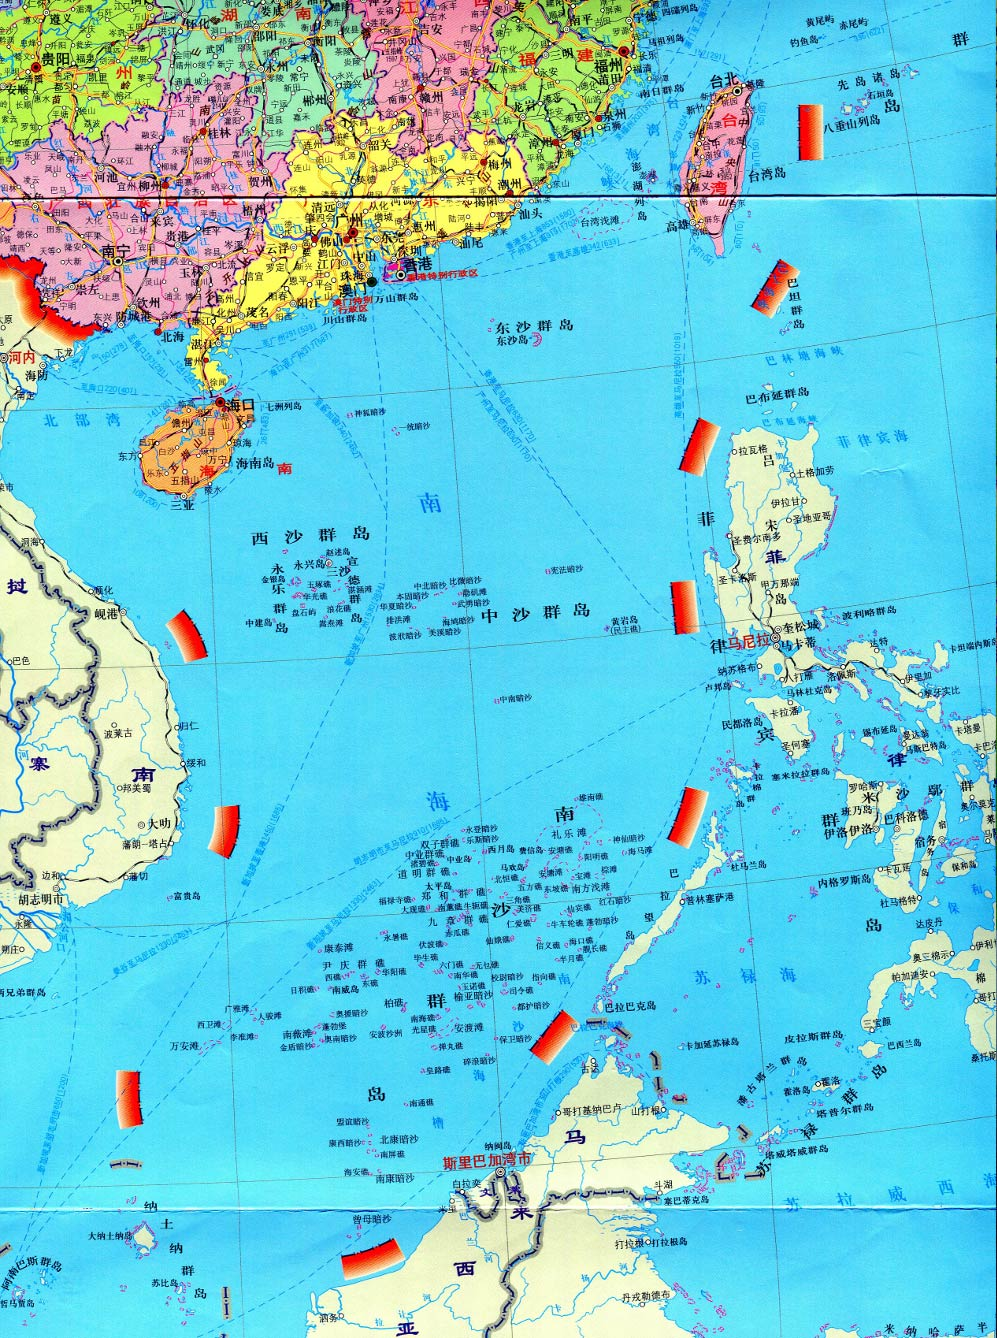 China's official map of maritime claims in the South China Sea